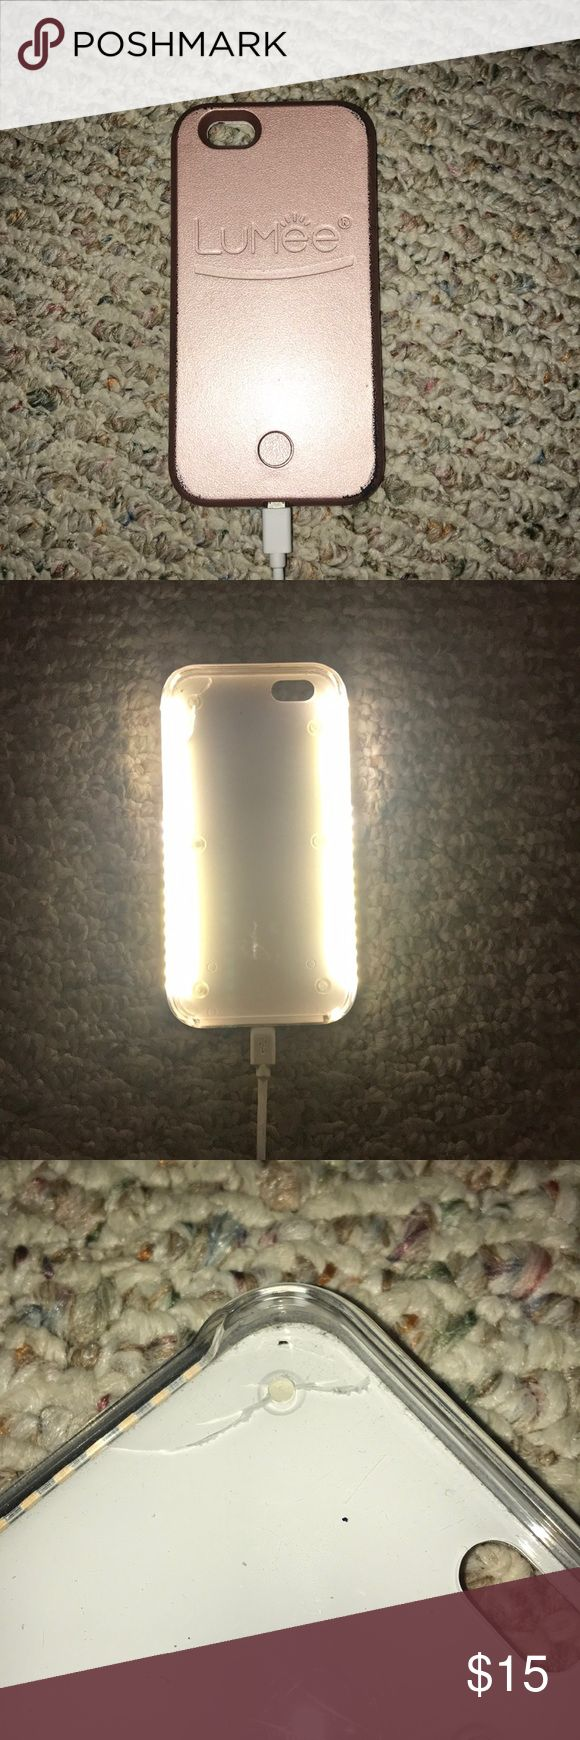 LuMee light up phone case Perfect for selfies when it's dark or for going out! Gives amazing lighting.   Has one slight crack on the inside on the top left side. It's not visible when the case is on, and does not affect the light at all.   *comes with the charger. This stays charged forever! I've had this for about 6 months now and have charged it only when I first got it, and it's still super powerful lighting.   Lighting is adjustable - can go dimmer or brighter by holding the button! :)…